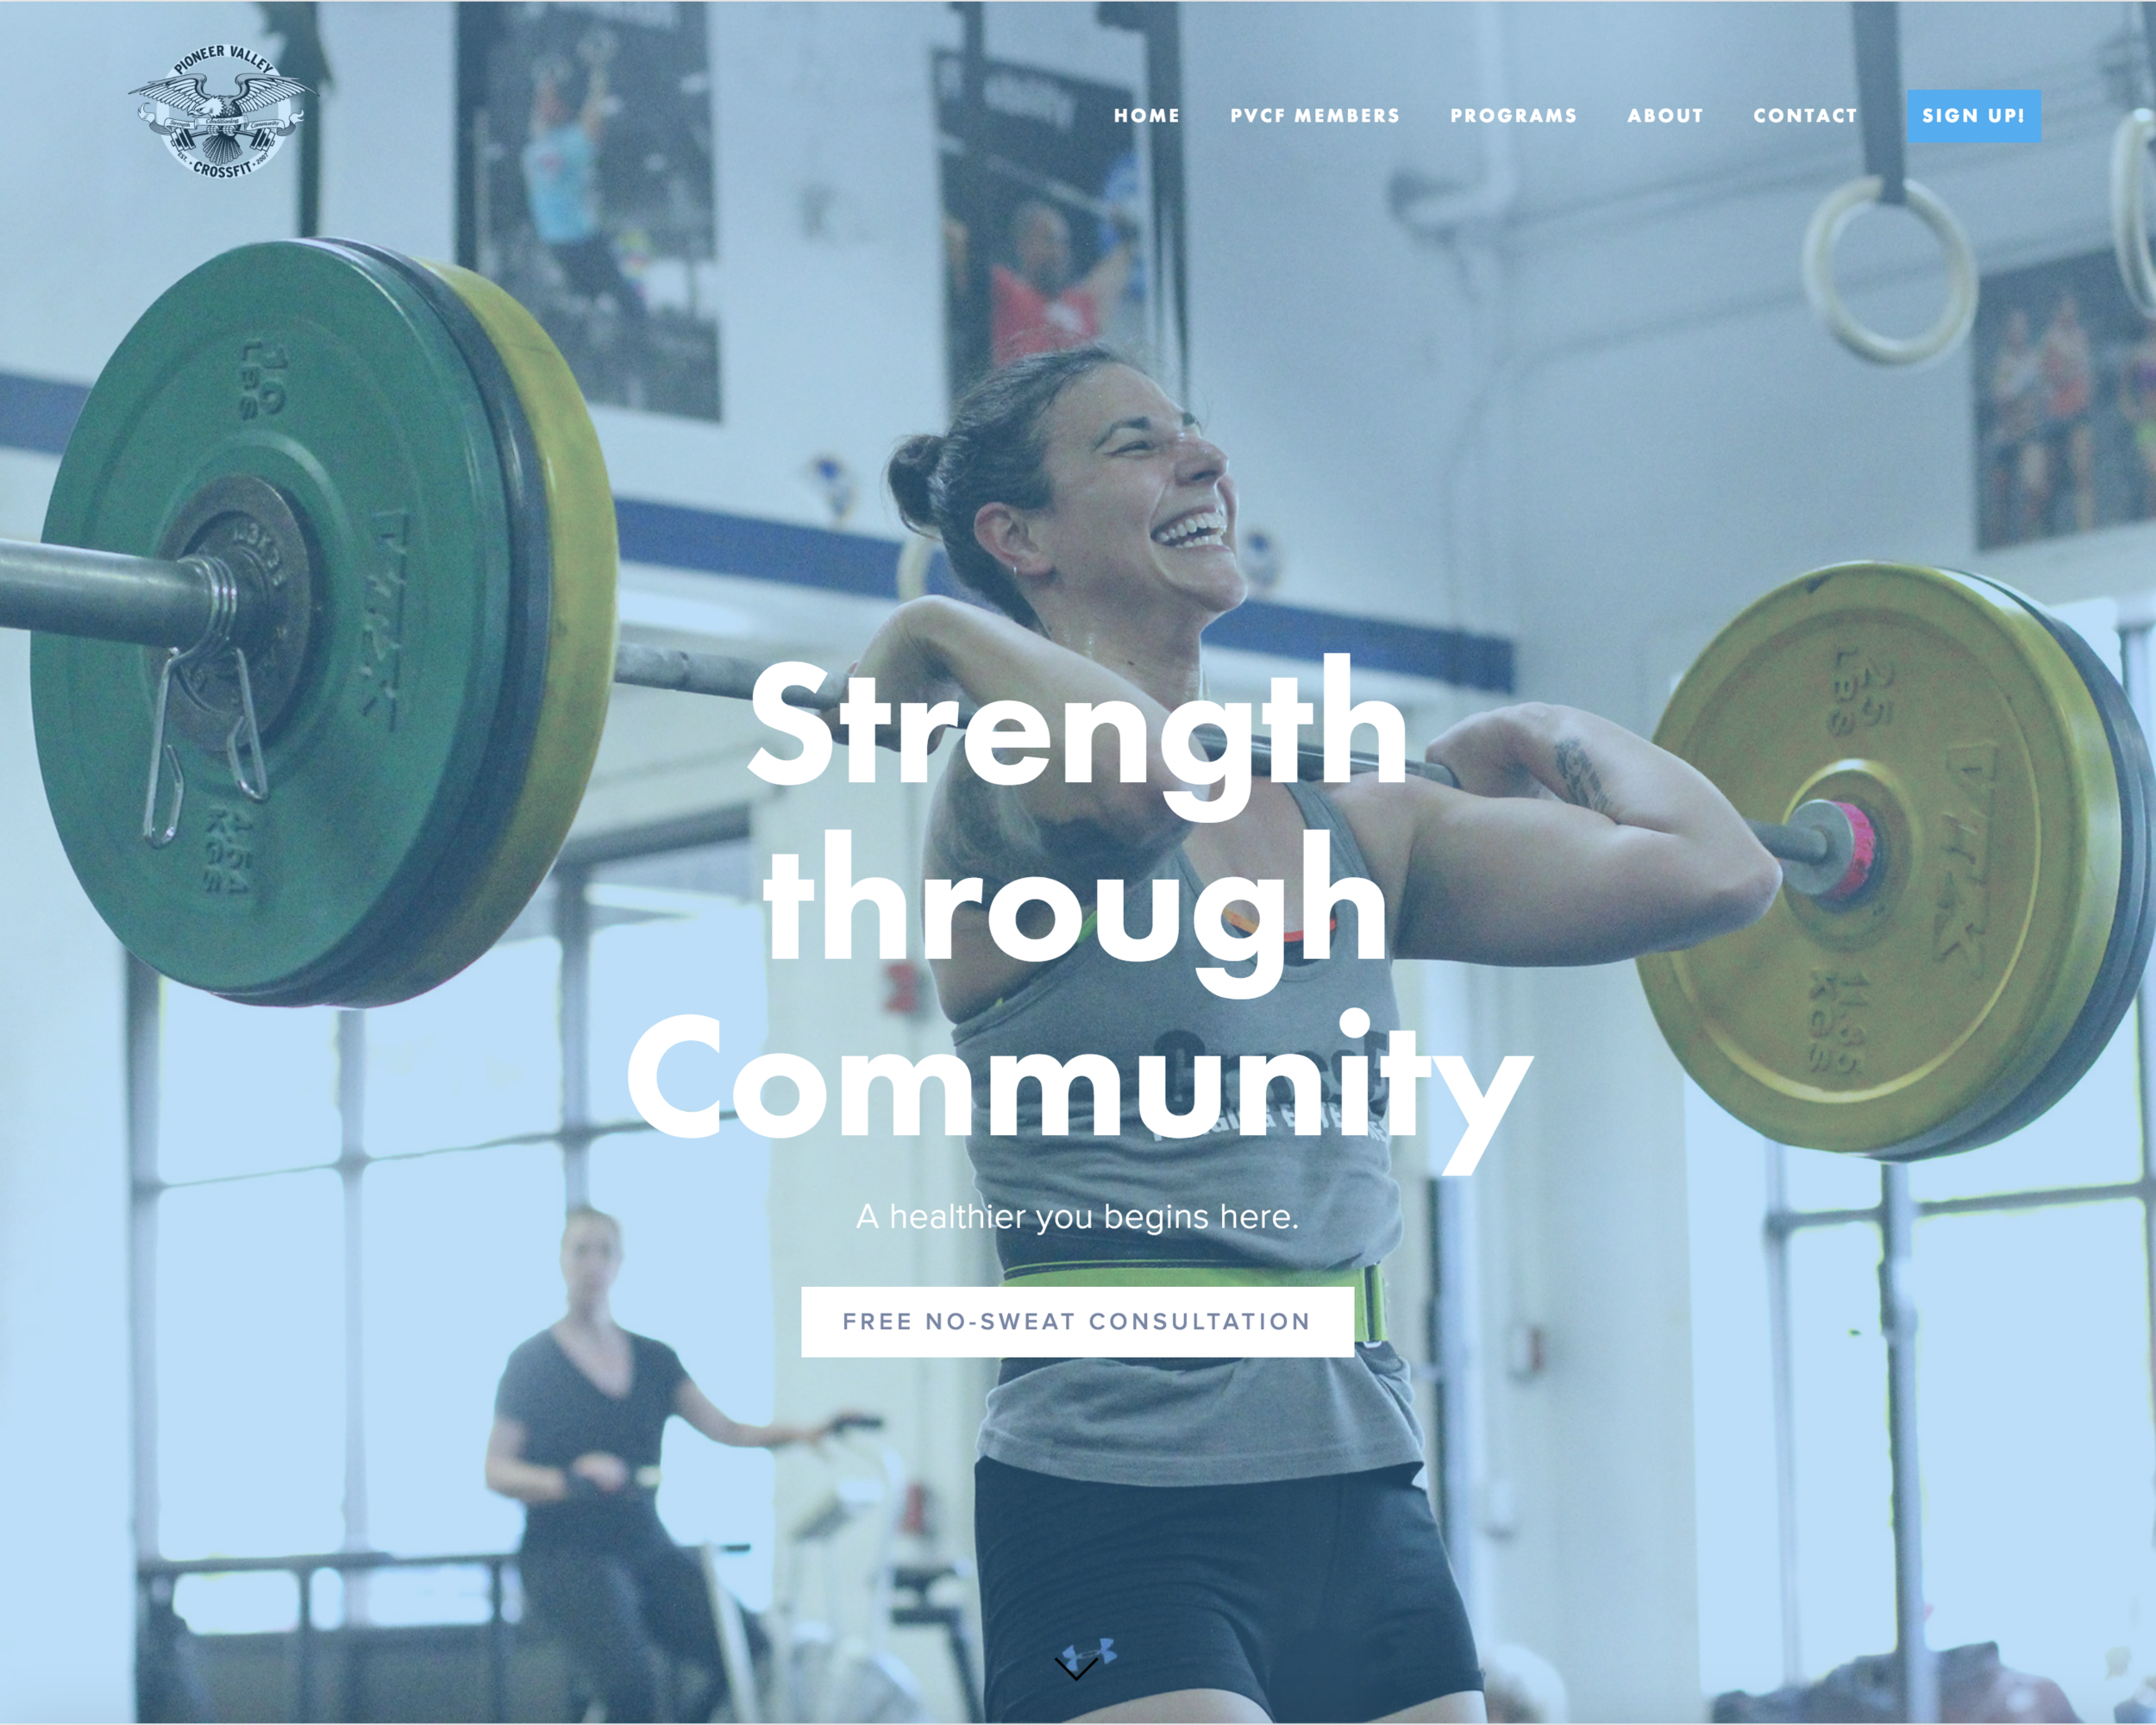 We are so very thrilled about our New Website! If you see anything, or have suggestions, please let Lizzy know:) liz@pioneervalleycrossfit.com